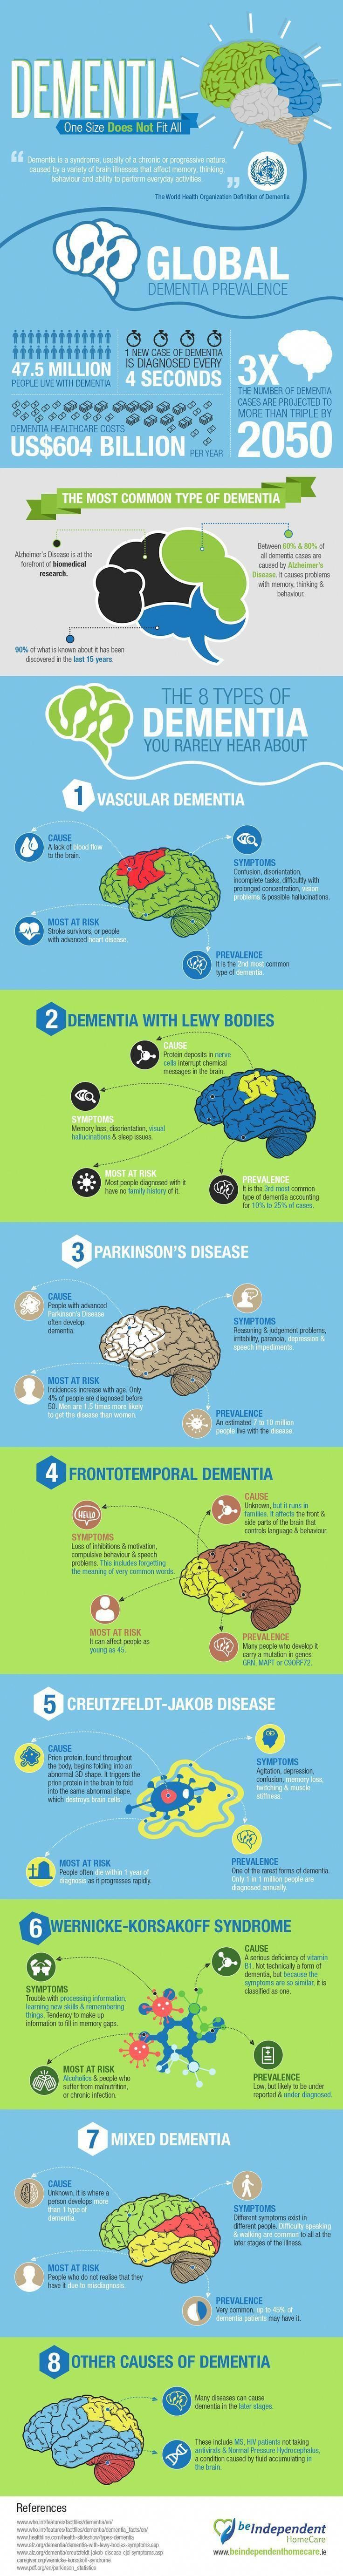 Did you know that not all dementia is Alzheimer's dementia? There are many types of dementia with different symptoms, causes and prognosis. This inforgraphic sums it up. #elderlycaredementia